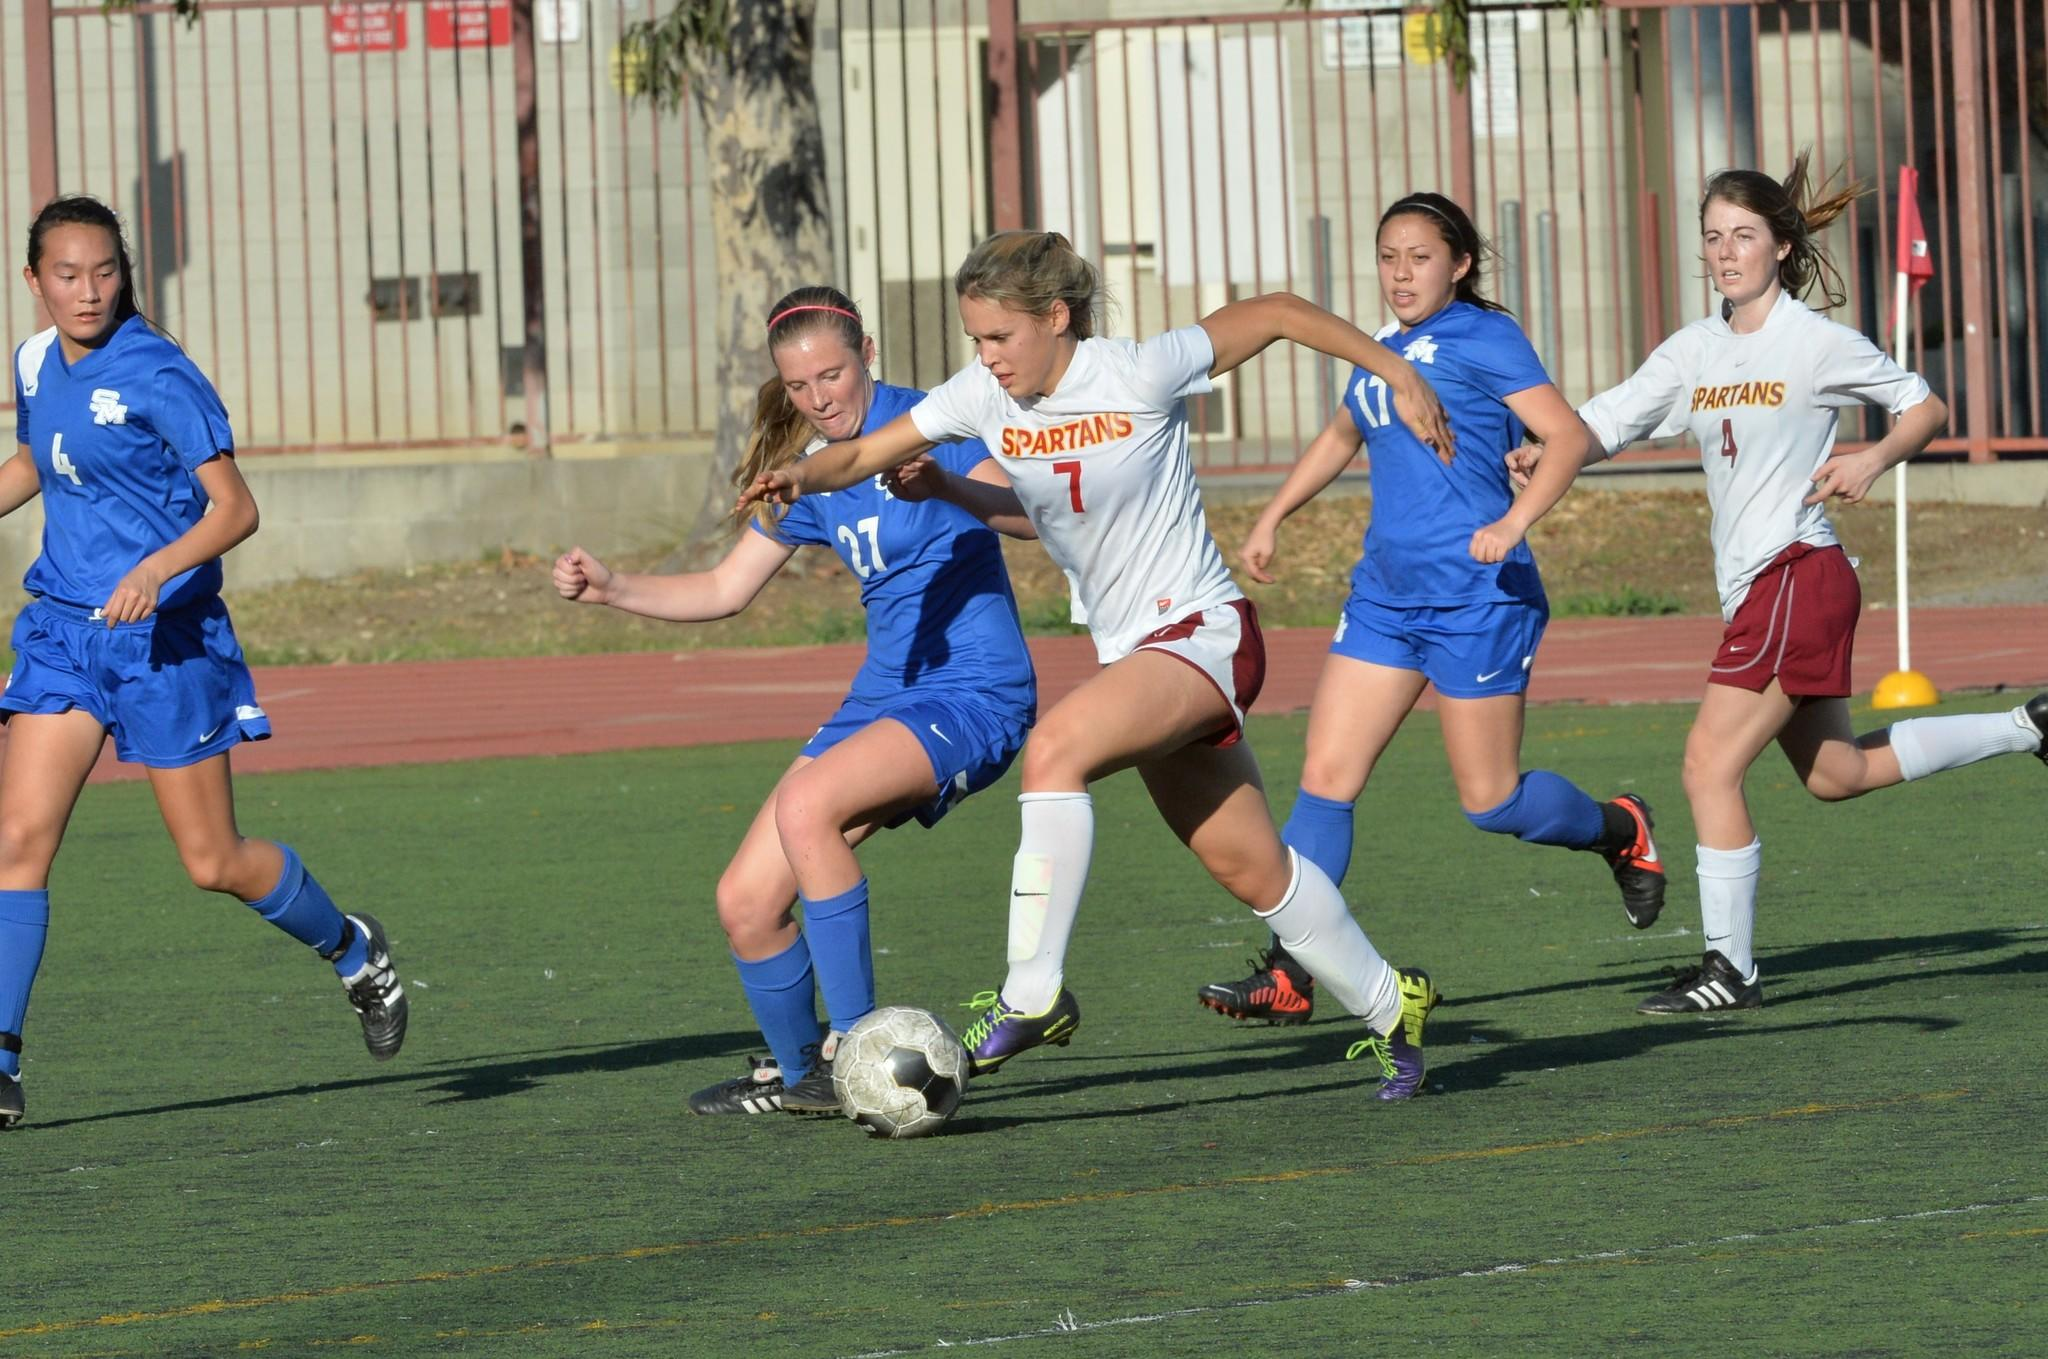 La Cañada High's Megan Decker attempts to bypass a San Marino defender during Thursday afternoon's Rio Hondo League season finale. The Spartans won, 3-1. (Photo Courtesy of Doug Brown)